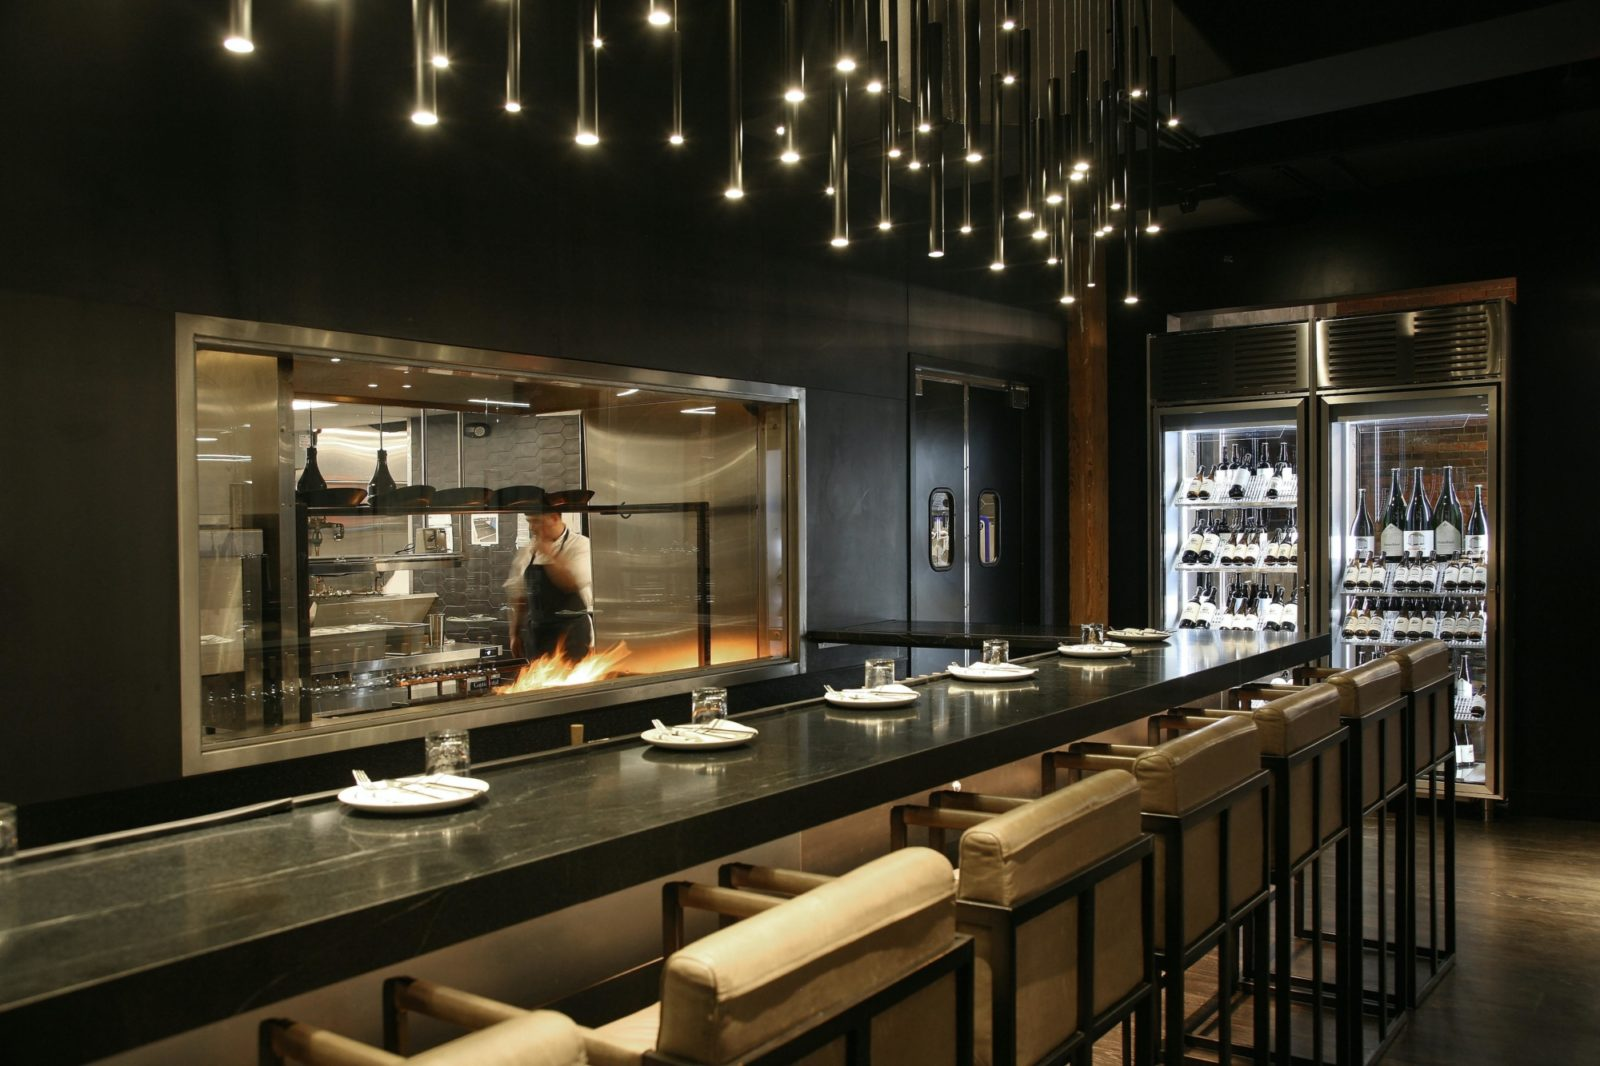 Restaurant Kitchen Designs How To Set Up A Commercial Kitchen On The Line Toast Pos